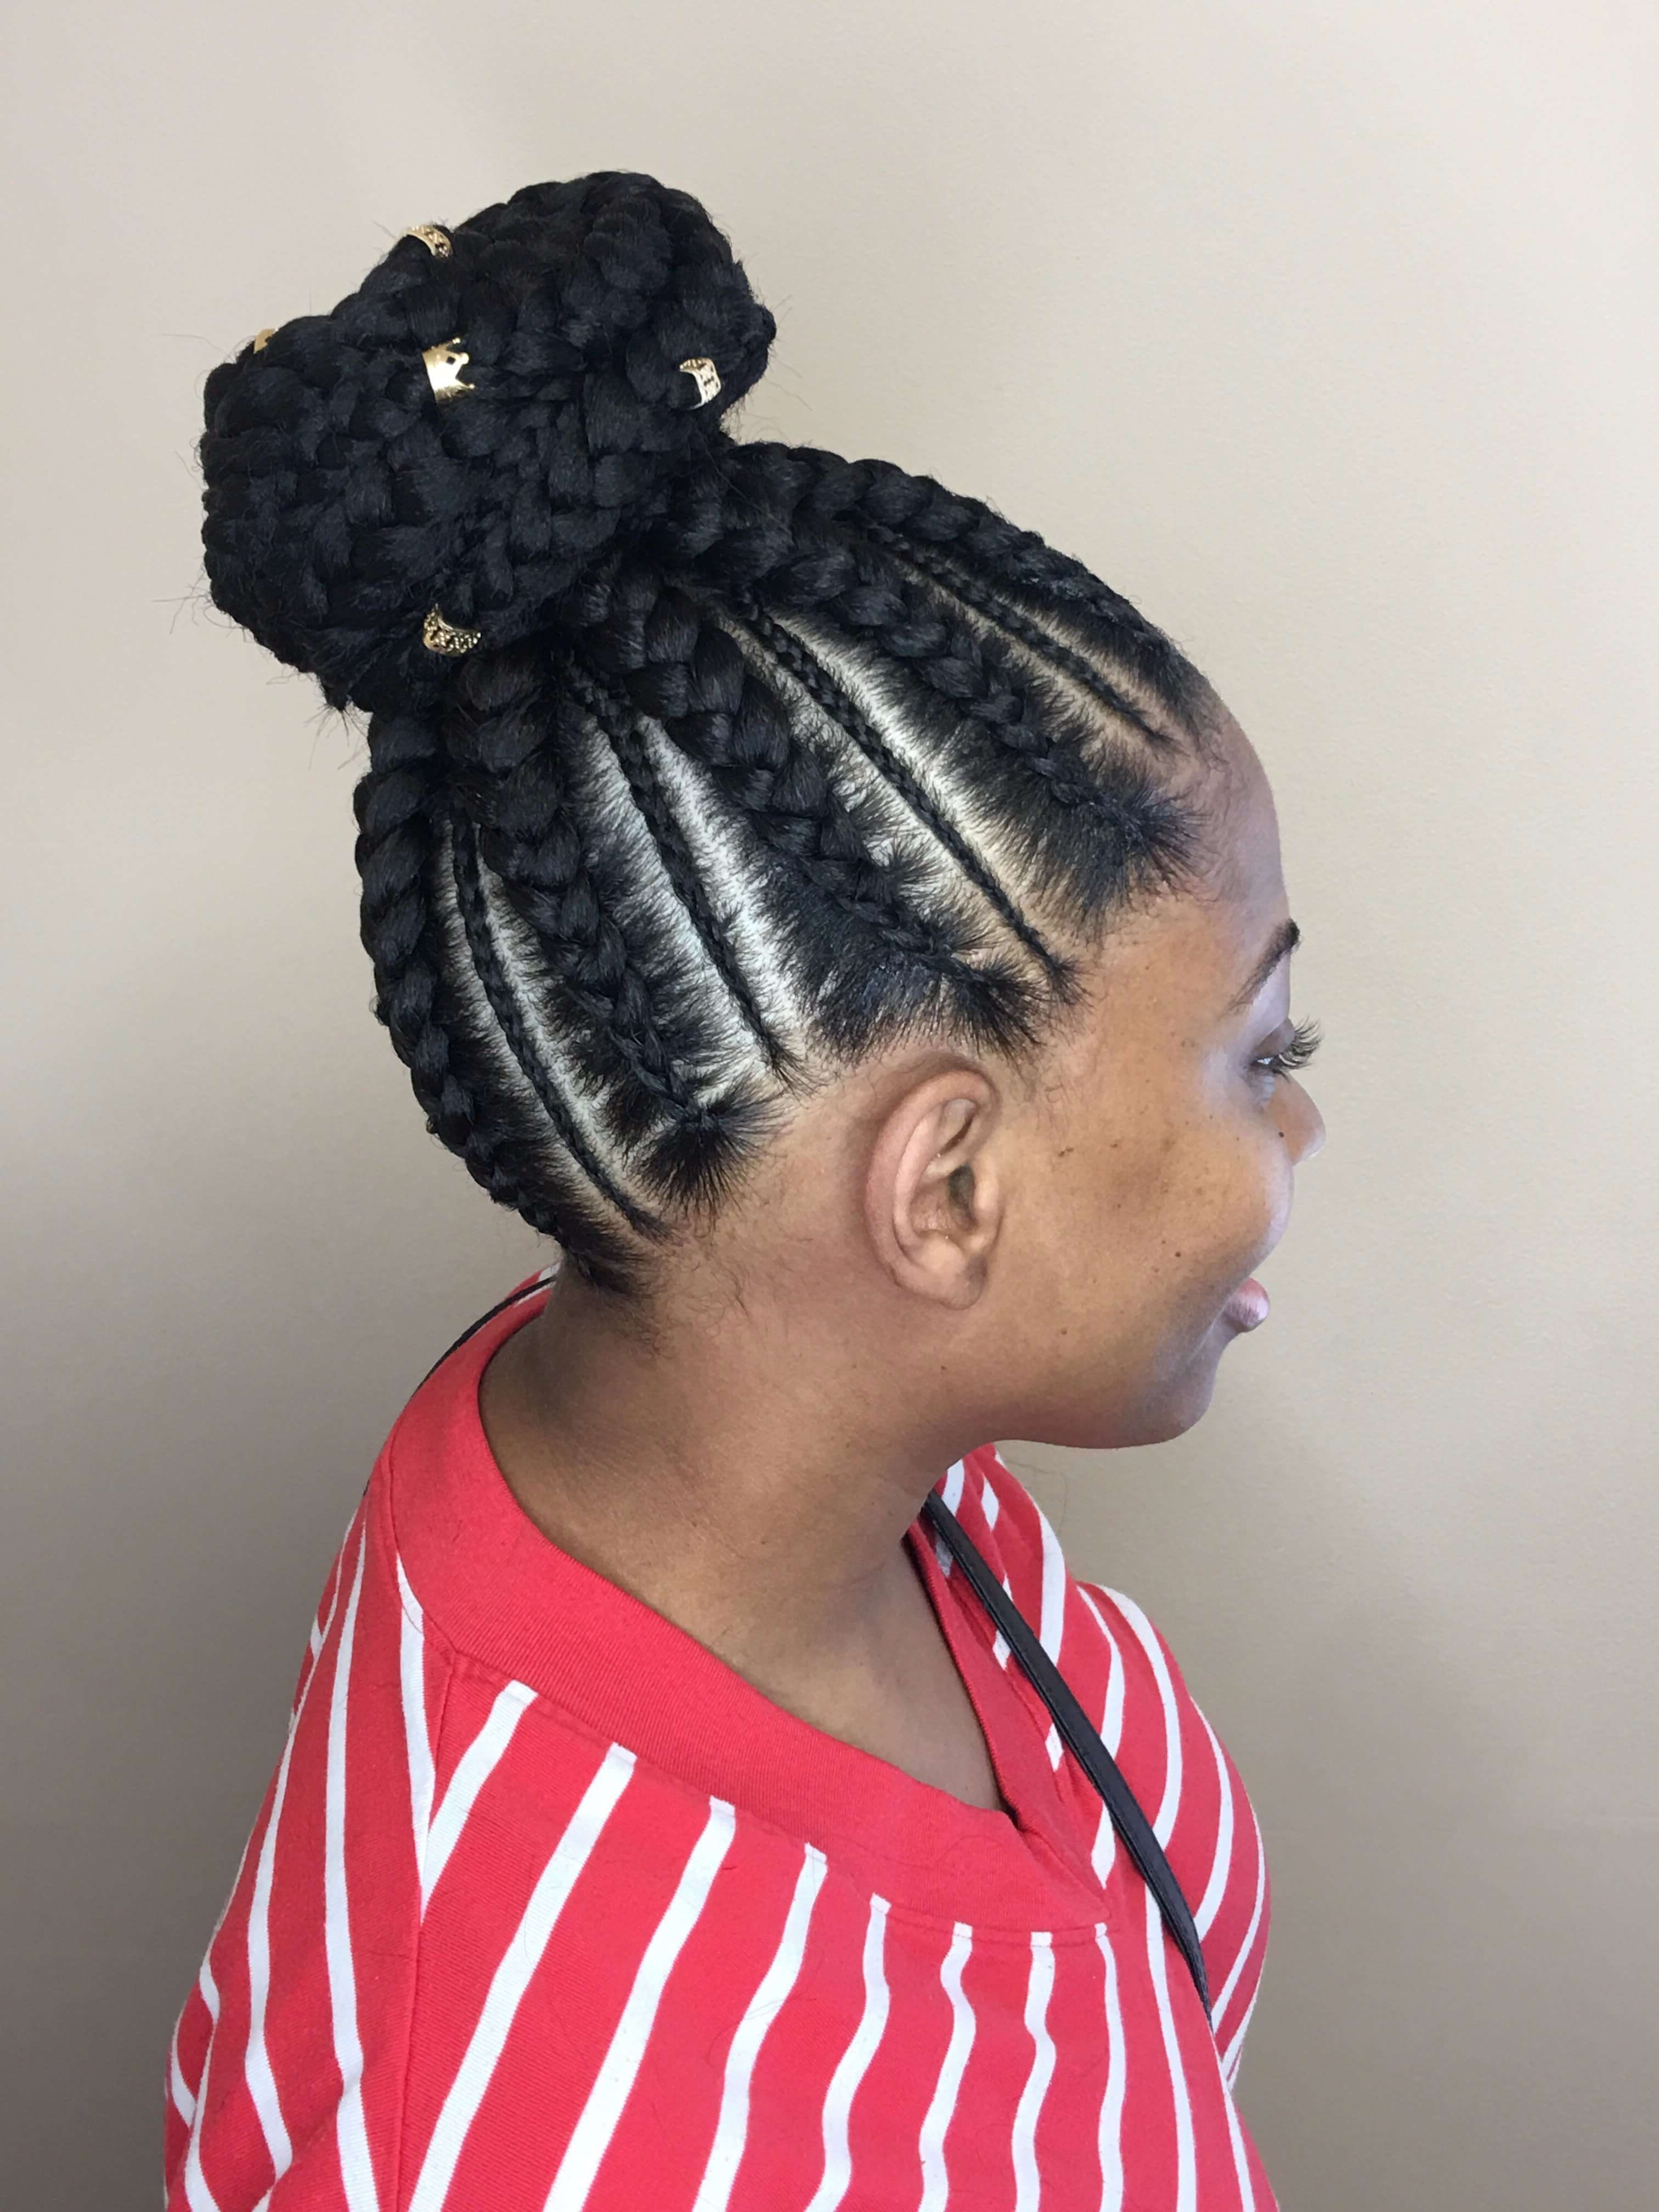 Recent Tight Black Swirling Under Braid Hairstyles With 50 Natural Goddess Braids To Bless Ethnic Hair In (View 8 of 20)